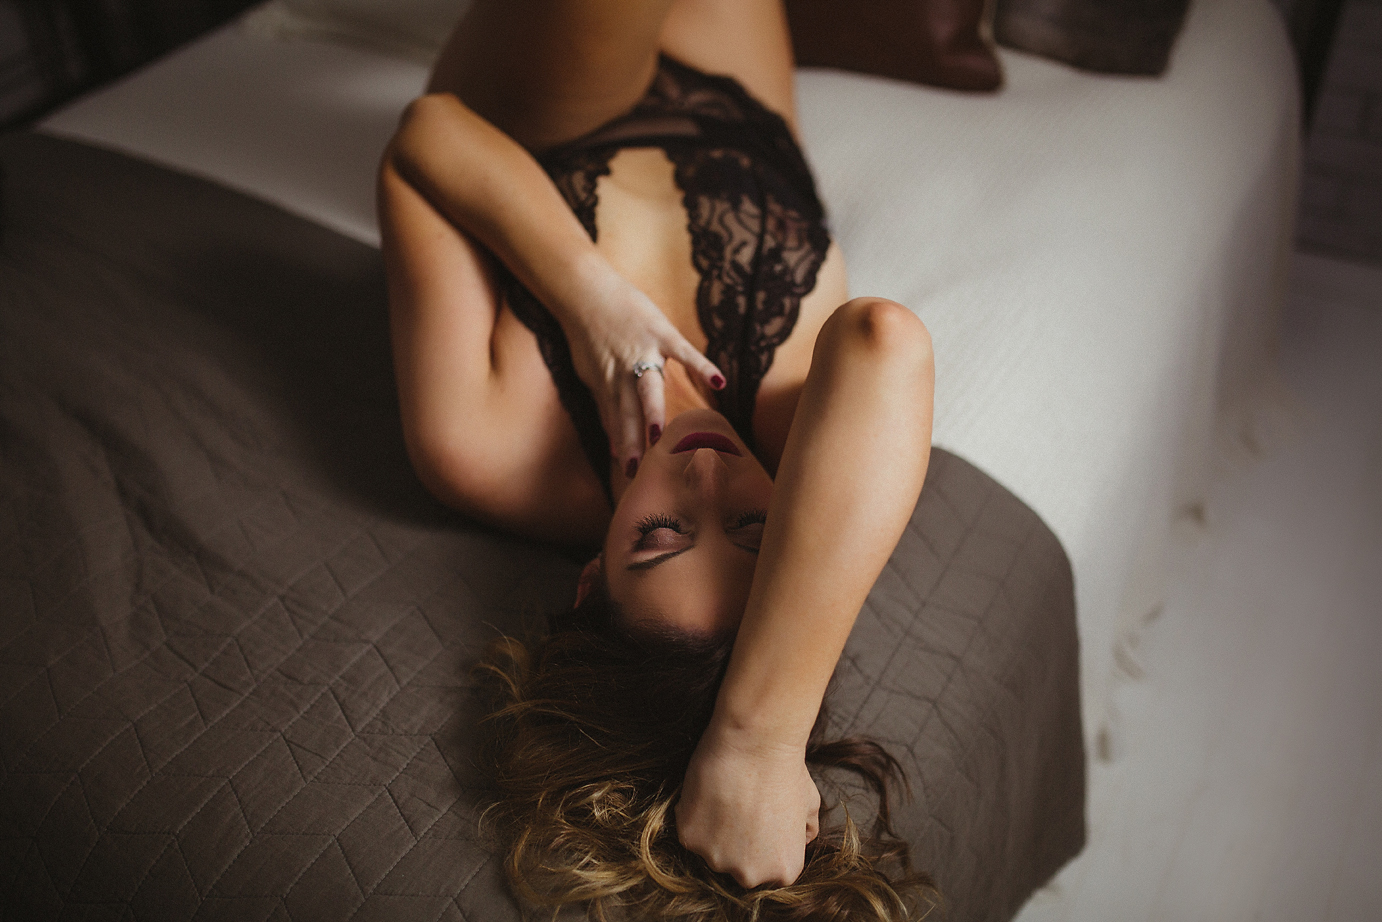 orange-county-boudoir-photography-studio-sexy-intimate-emotional-raw.jpg